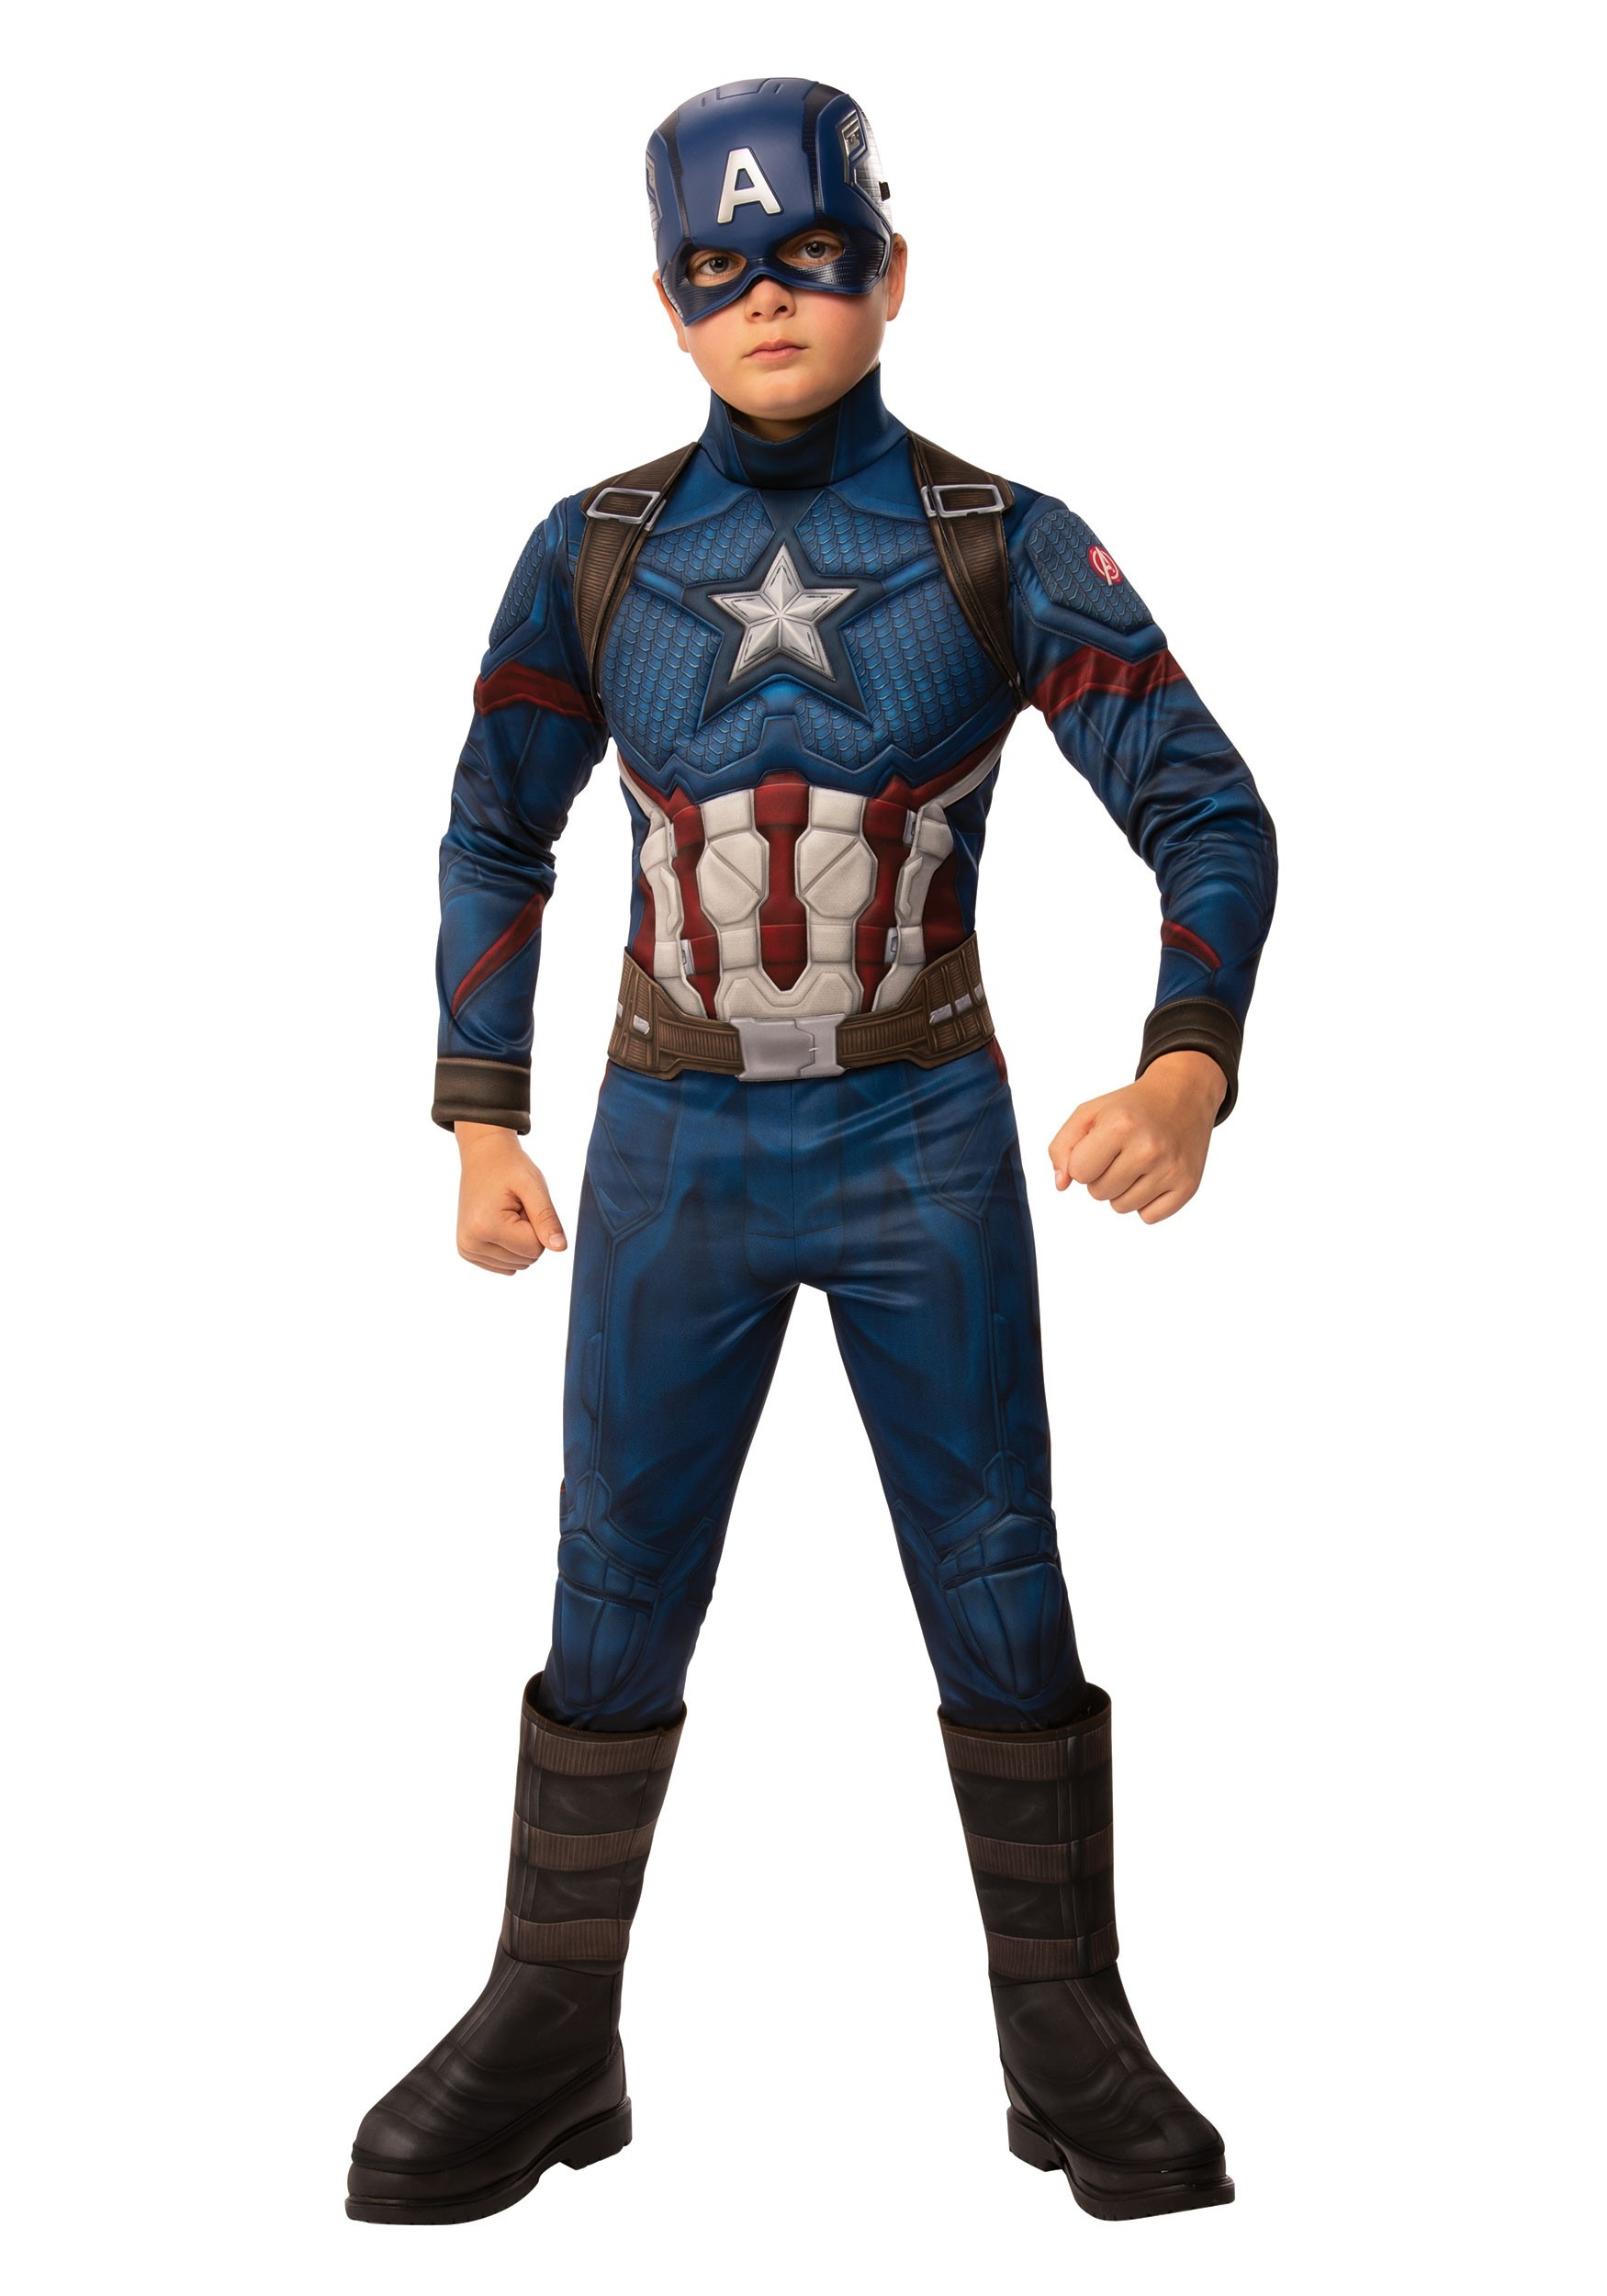 Marvel Avengers Endgame Boys Captain America Deluxe Costume